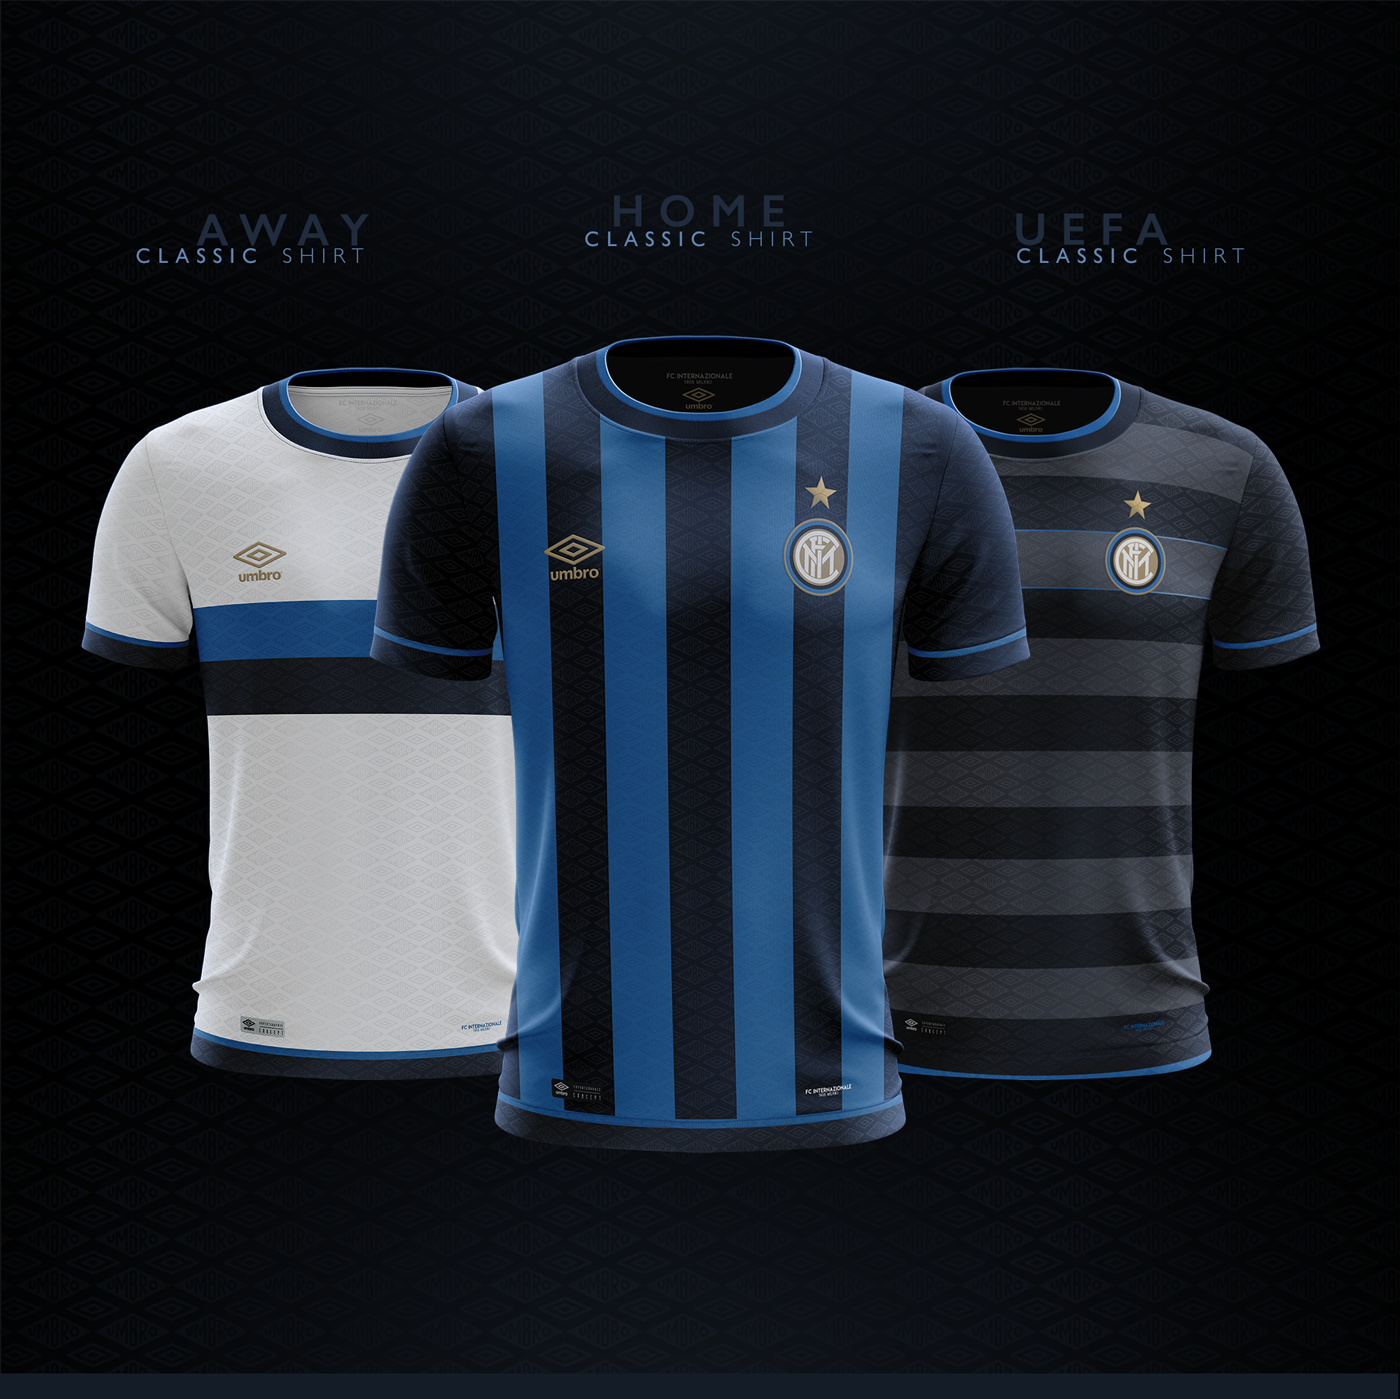 89d8fd5aef5 Classic Shirts Concept | Umbro | FC Internazionale on Behance